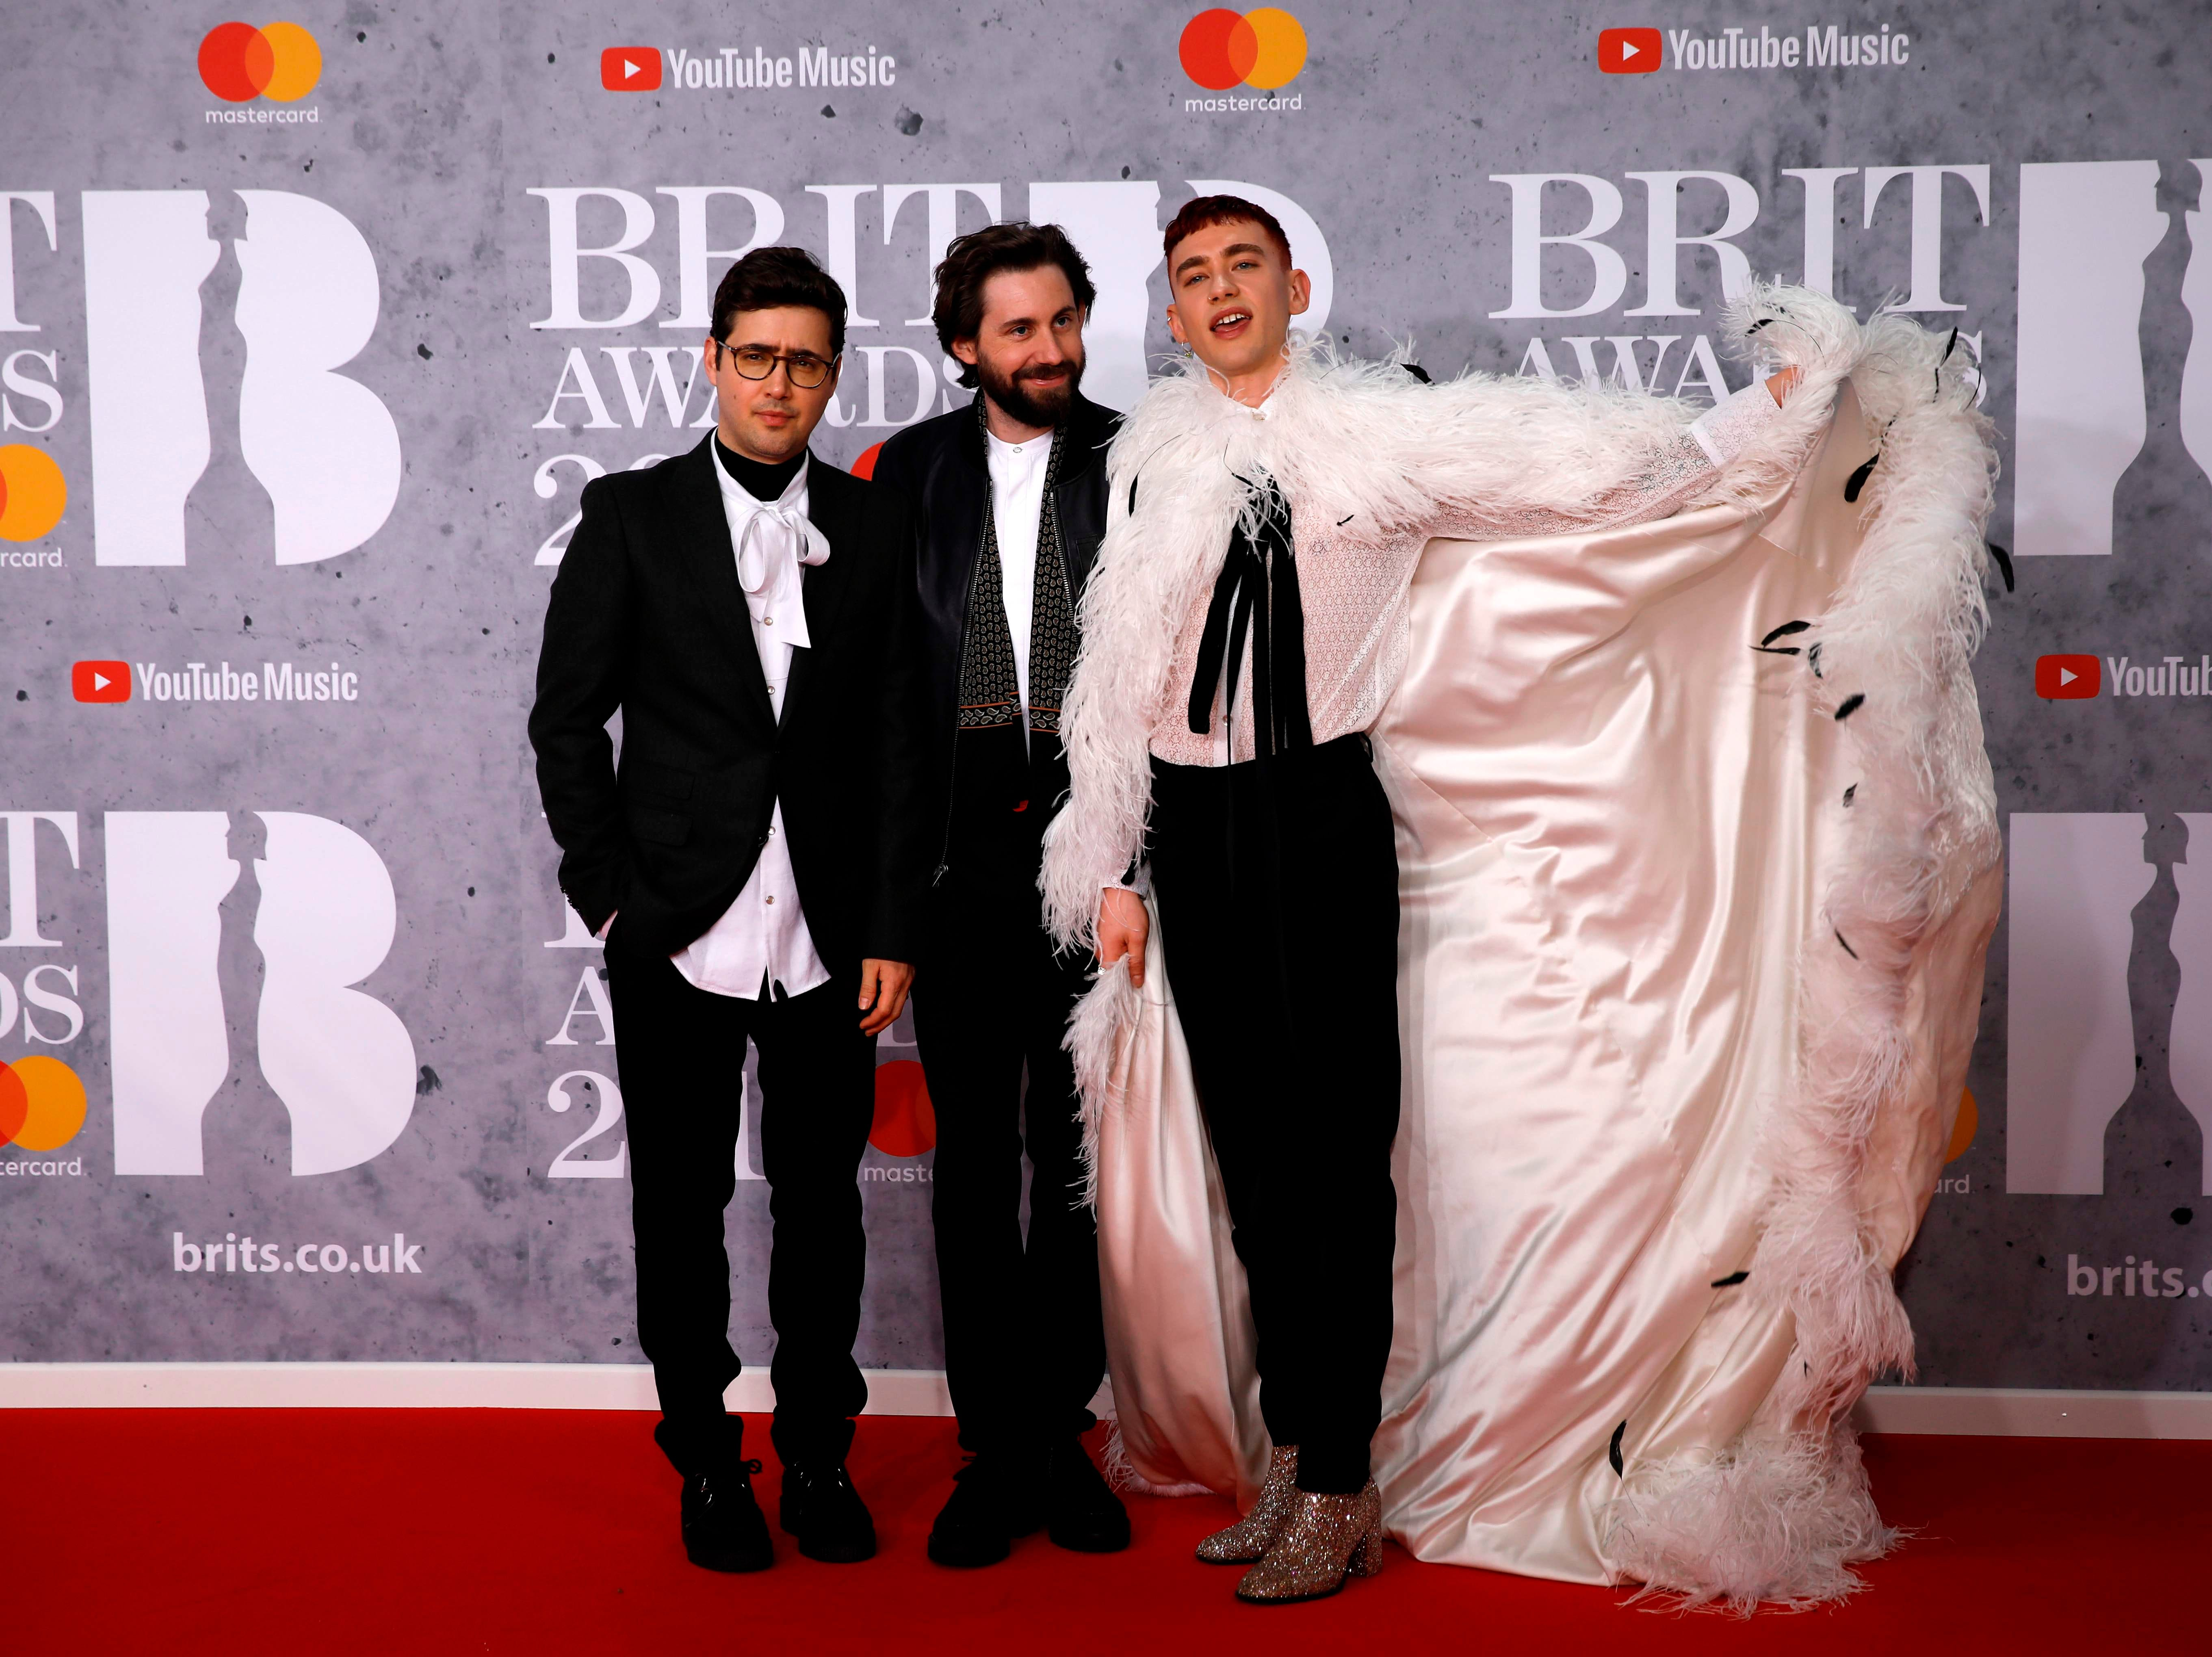 British group 'Years & Years', Olly Alexander, Mikey Goldsworthy and Emre Turkmen pose on the red carpet on arrival for the BRIT Awards 2019 in London on February 20, 2019. (Photo by Tolga AKMEN / AFP) / RESTRICTED TO EDITORIAL USE  NO POSTERS  NO MERCHANDISE NO USE IN PUBLICATIONS DEVOTED TO ARTISTSTOLGA AKMEN/AFP/Getty Images ORIG FILE ID: AFP_1DO1CR